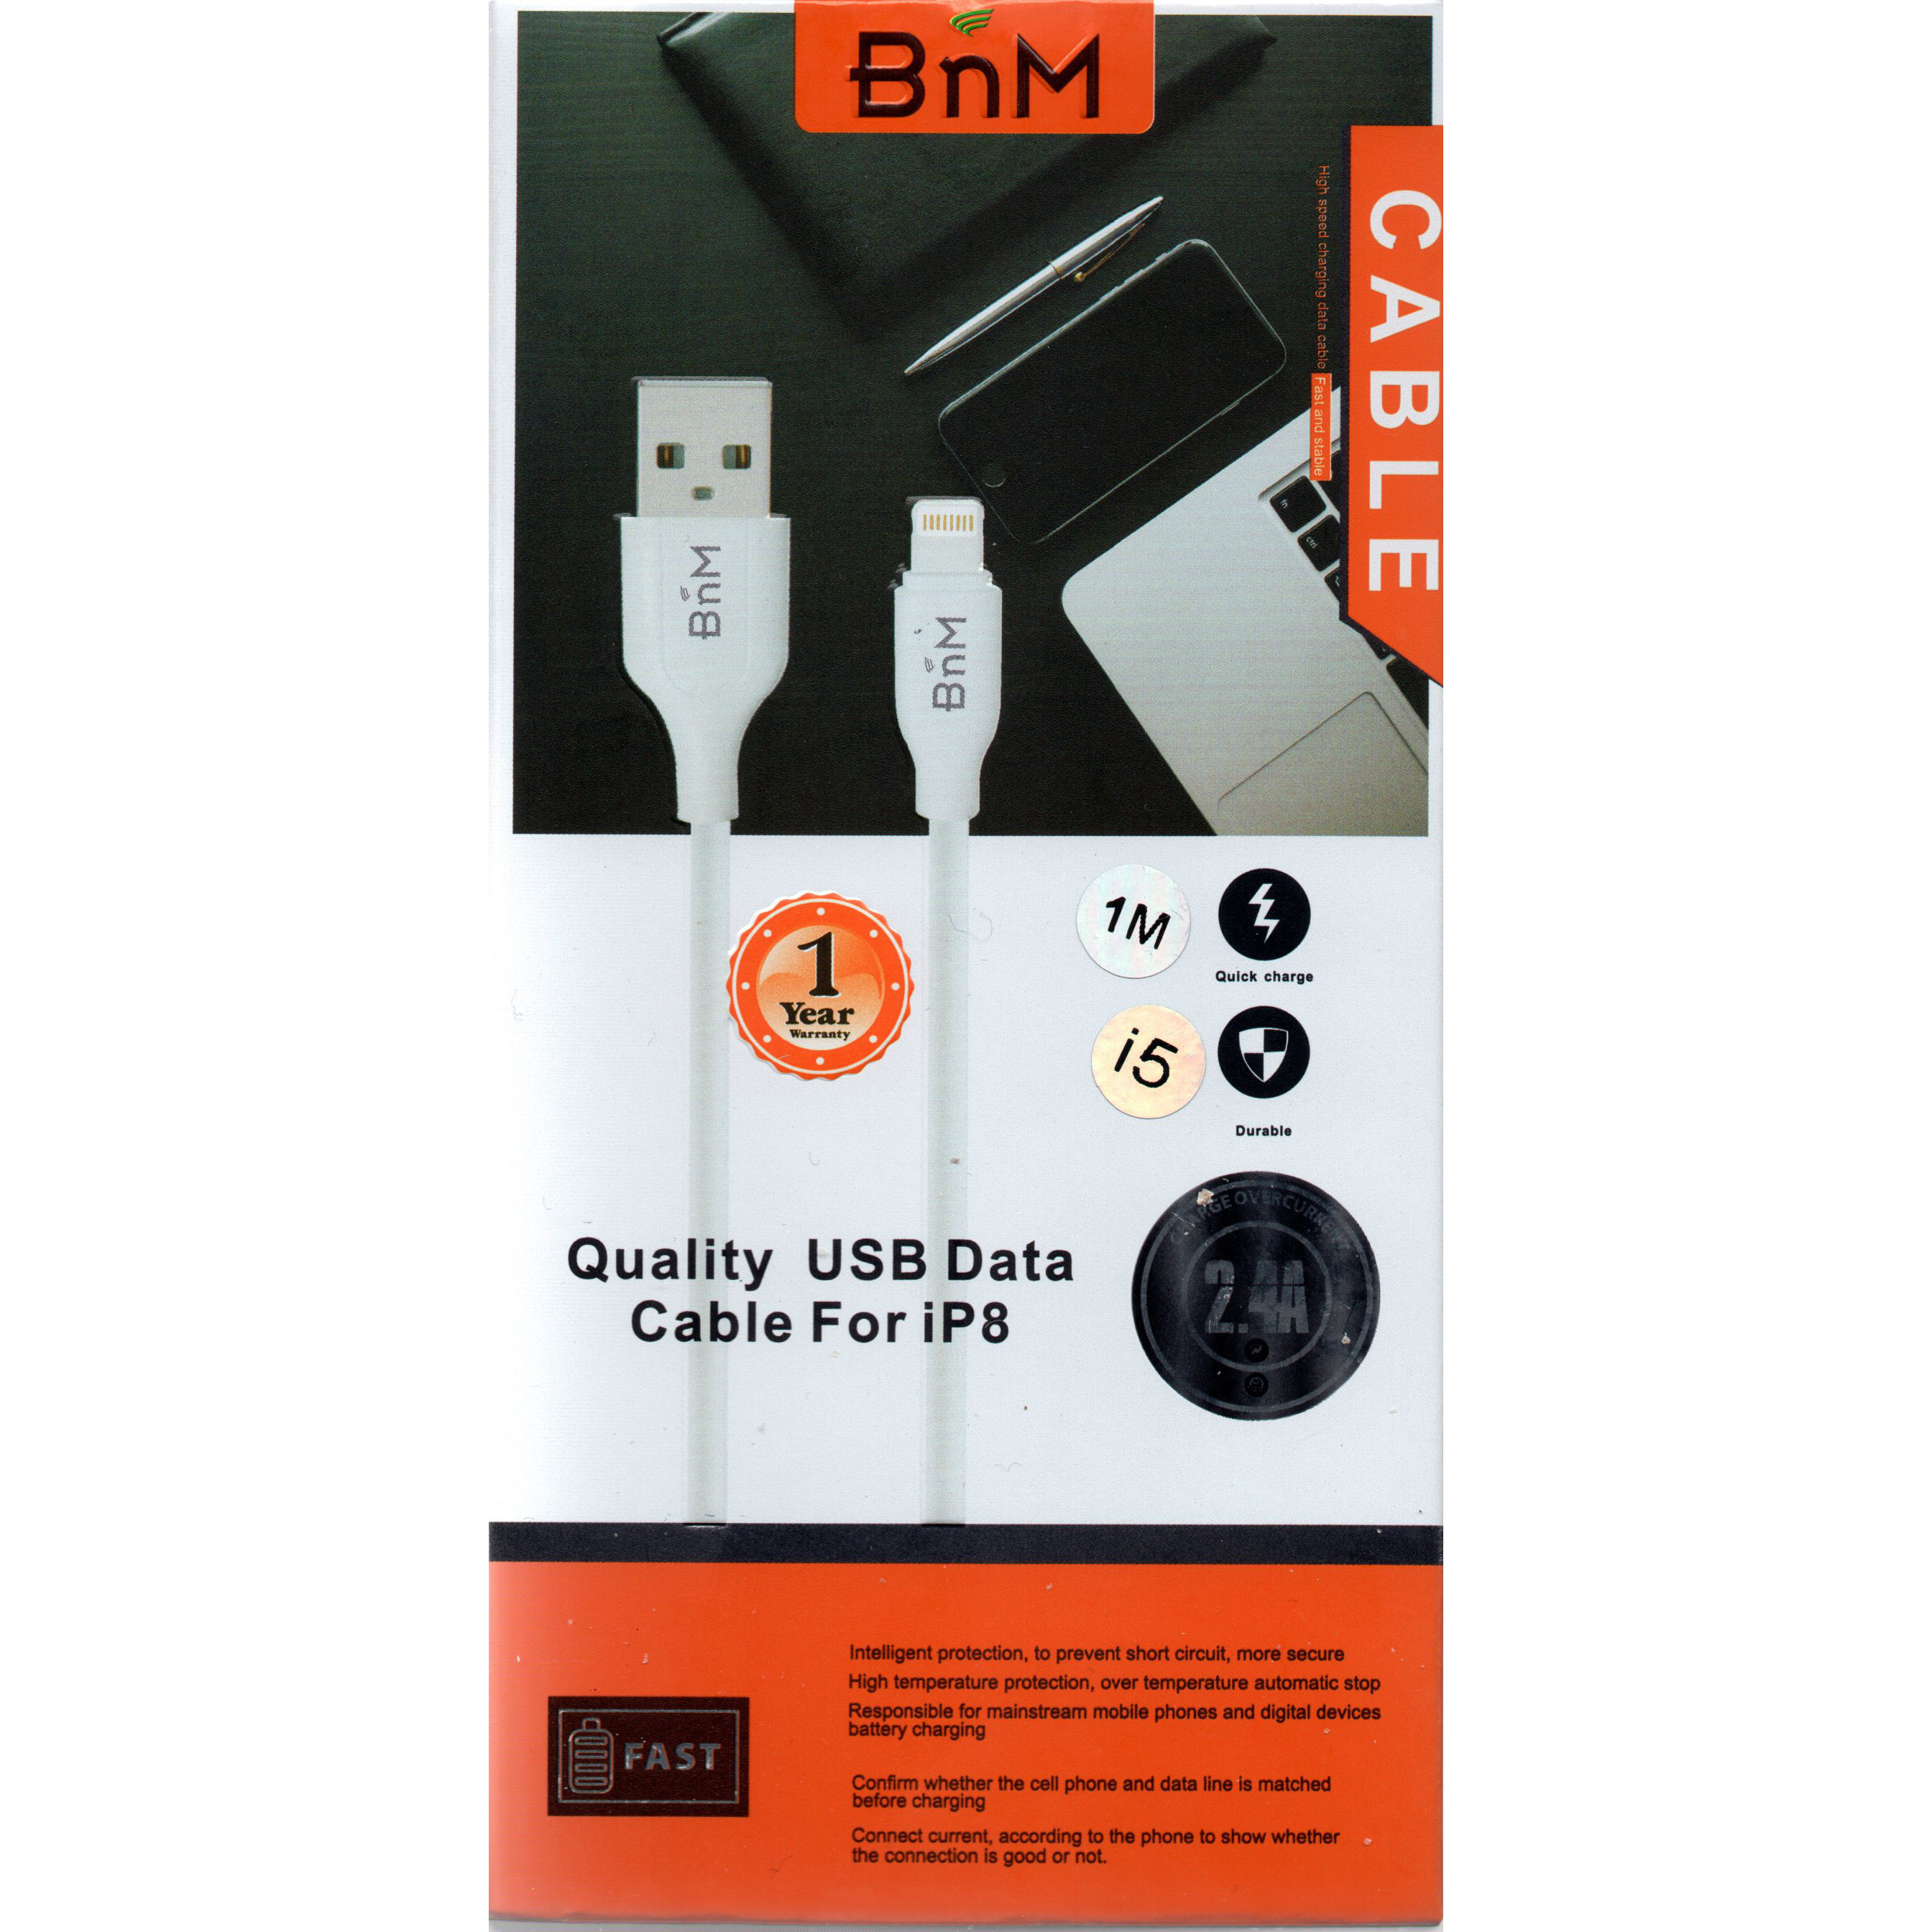 BnM iPhone 5/6/7 Charging Cable